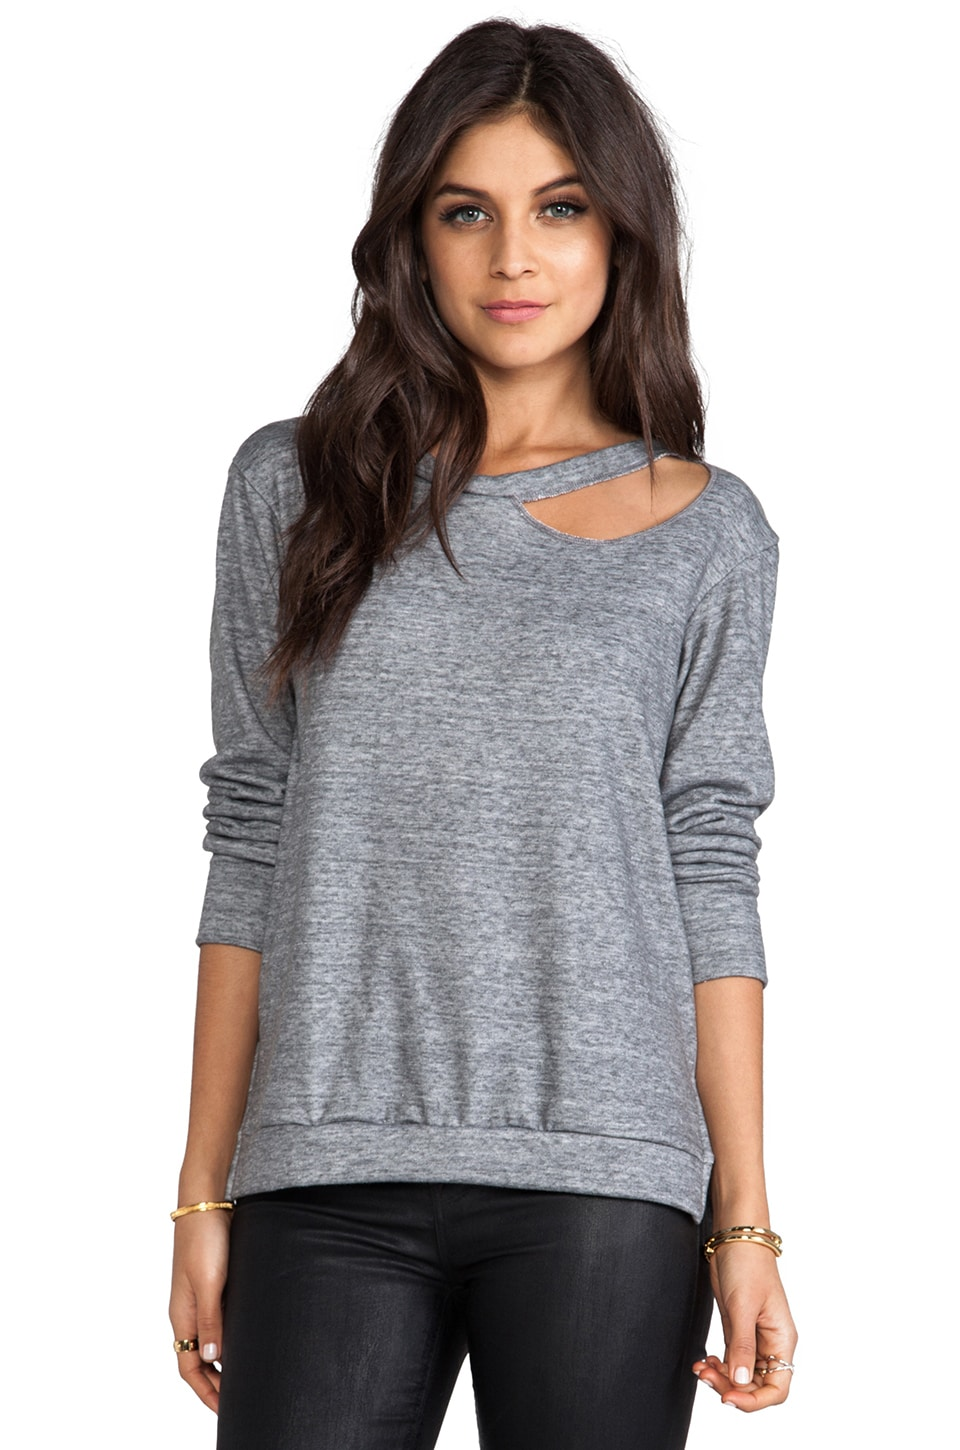 LNA Cueva Sweatshirt in Heather Grey